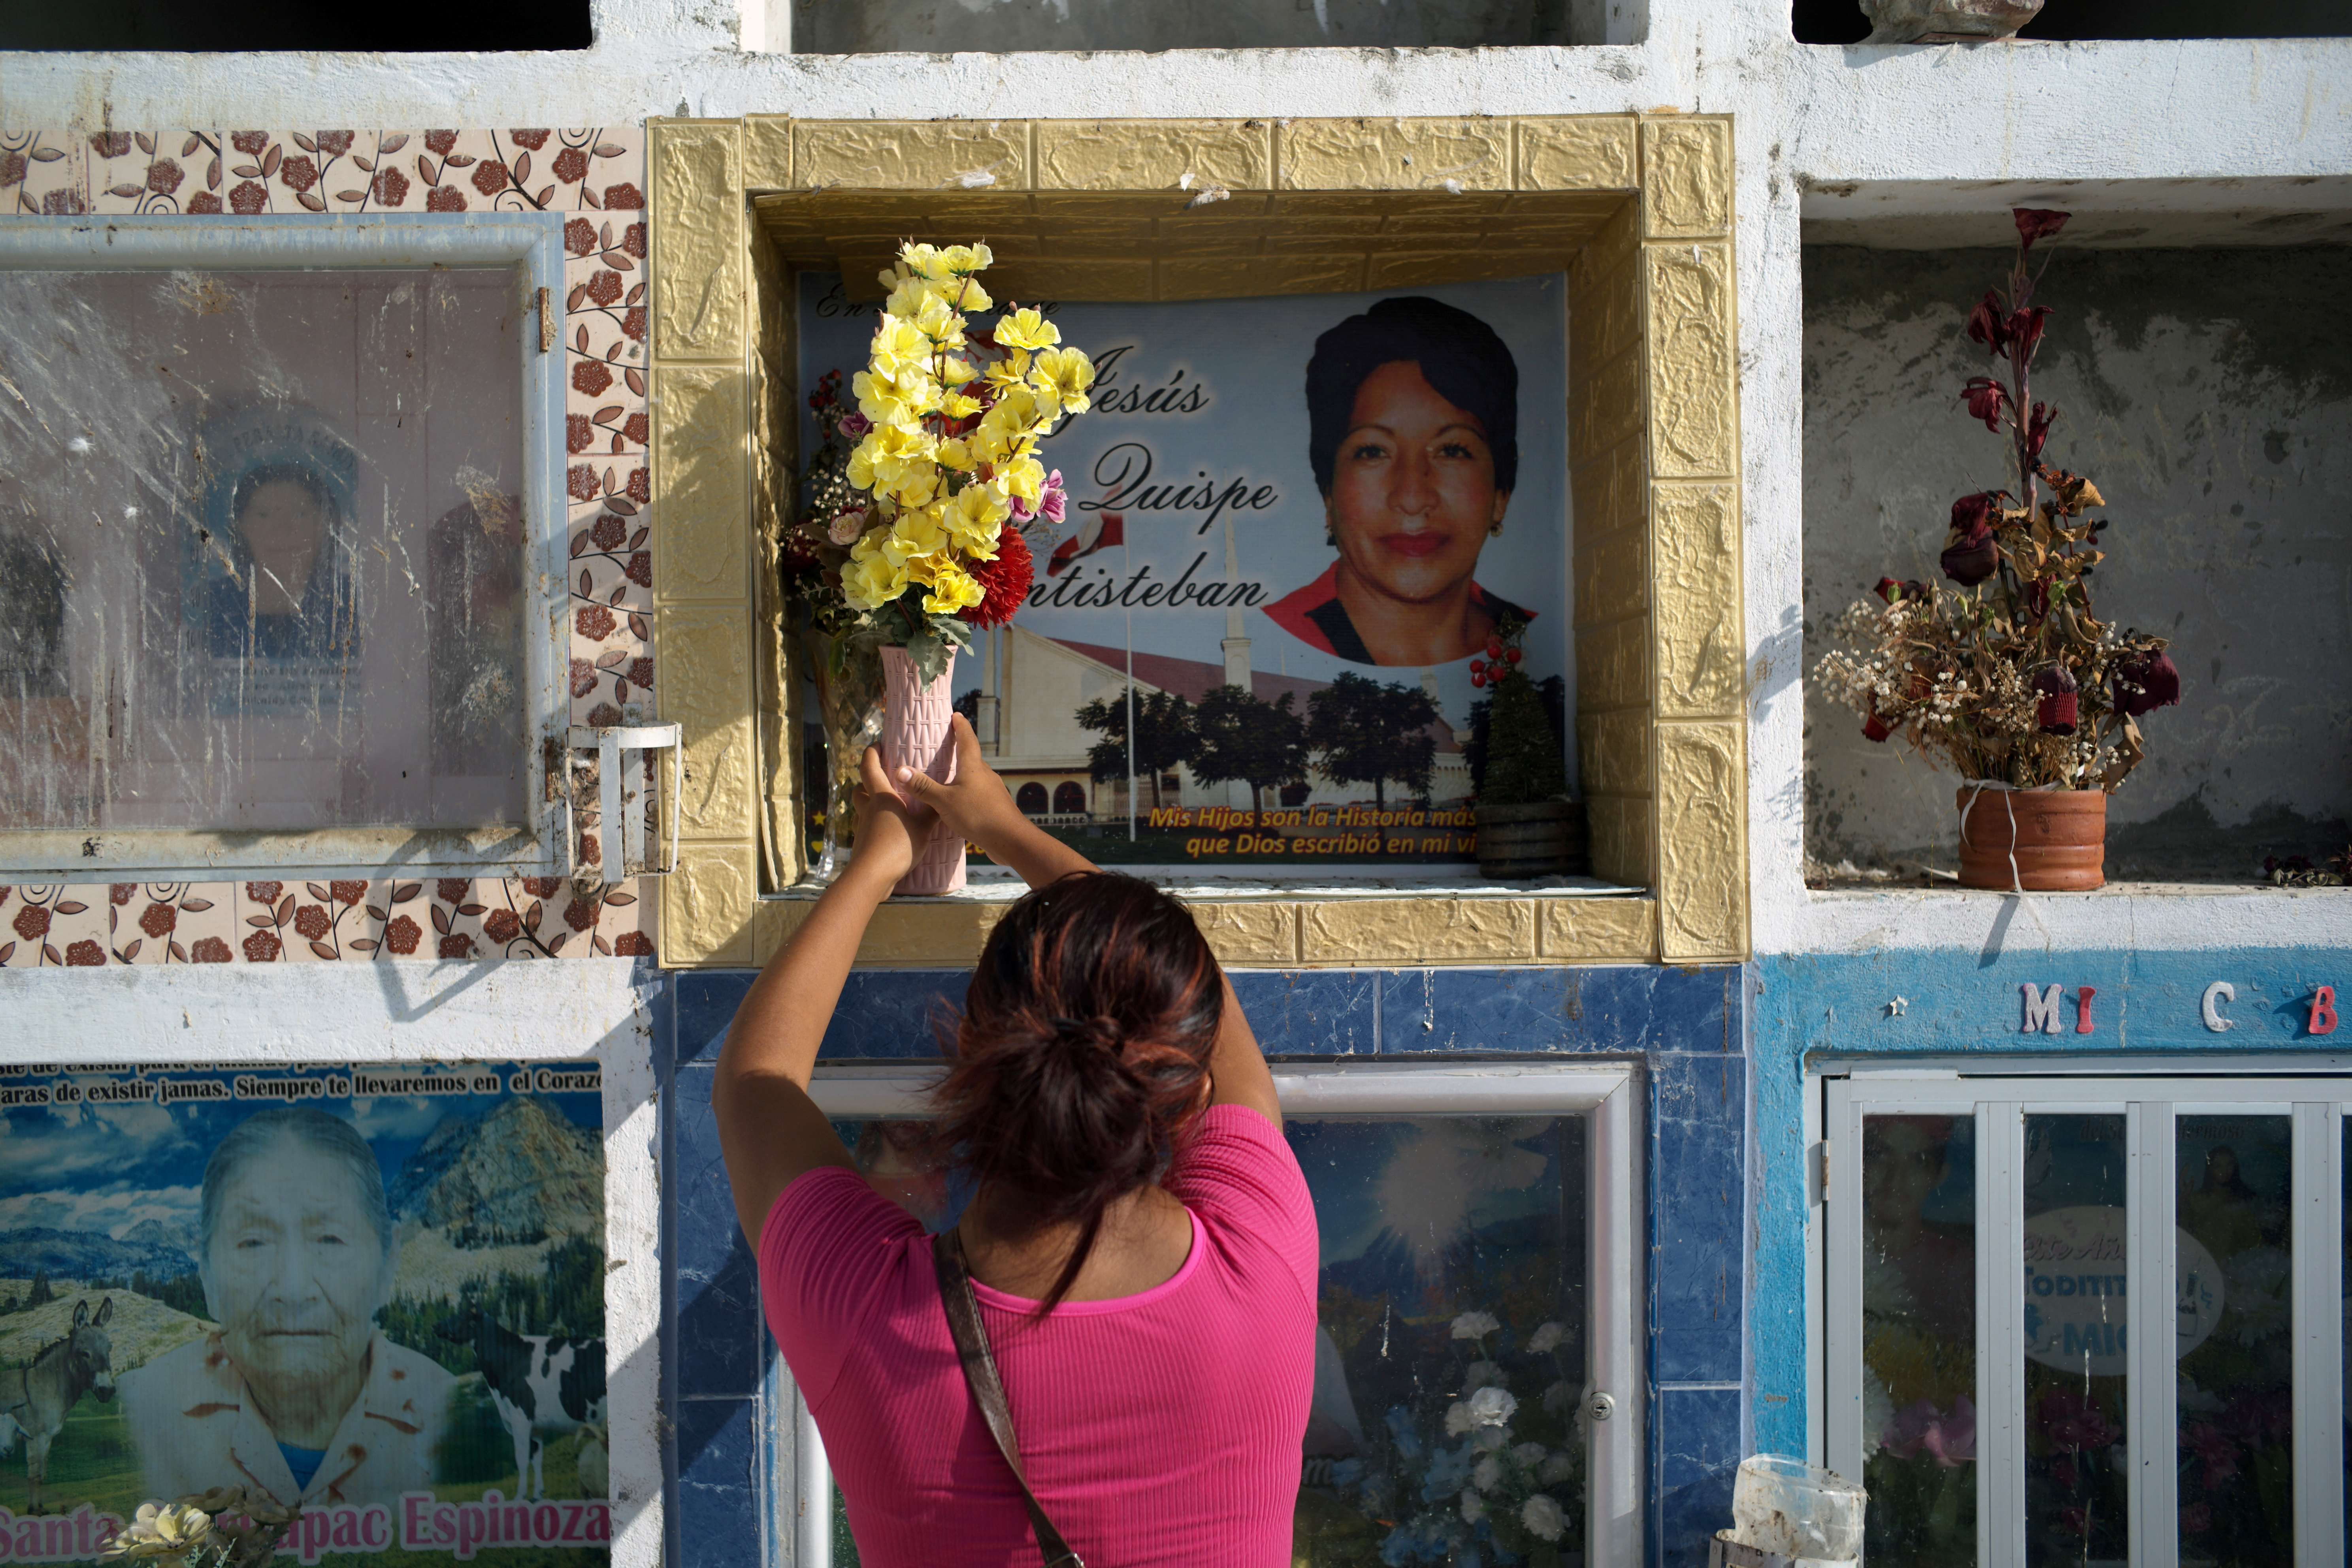 Hellen Nanez, who lost 13 relatives to the coronavirus disease (COVID-19) and whose father is being treated for COVID-19 in the Intensive Care Unit, visits the grave of her aunt, who died in June 2020 of COVID-19, in Pisco, Peru, May 9, 2021. Picture taken May 9, 2021. REUTERS/Alessandro Cinque - RC28CN9DIM91